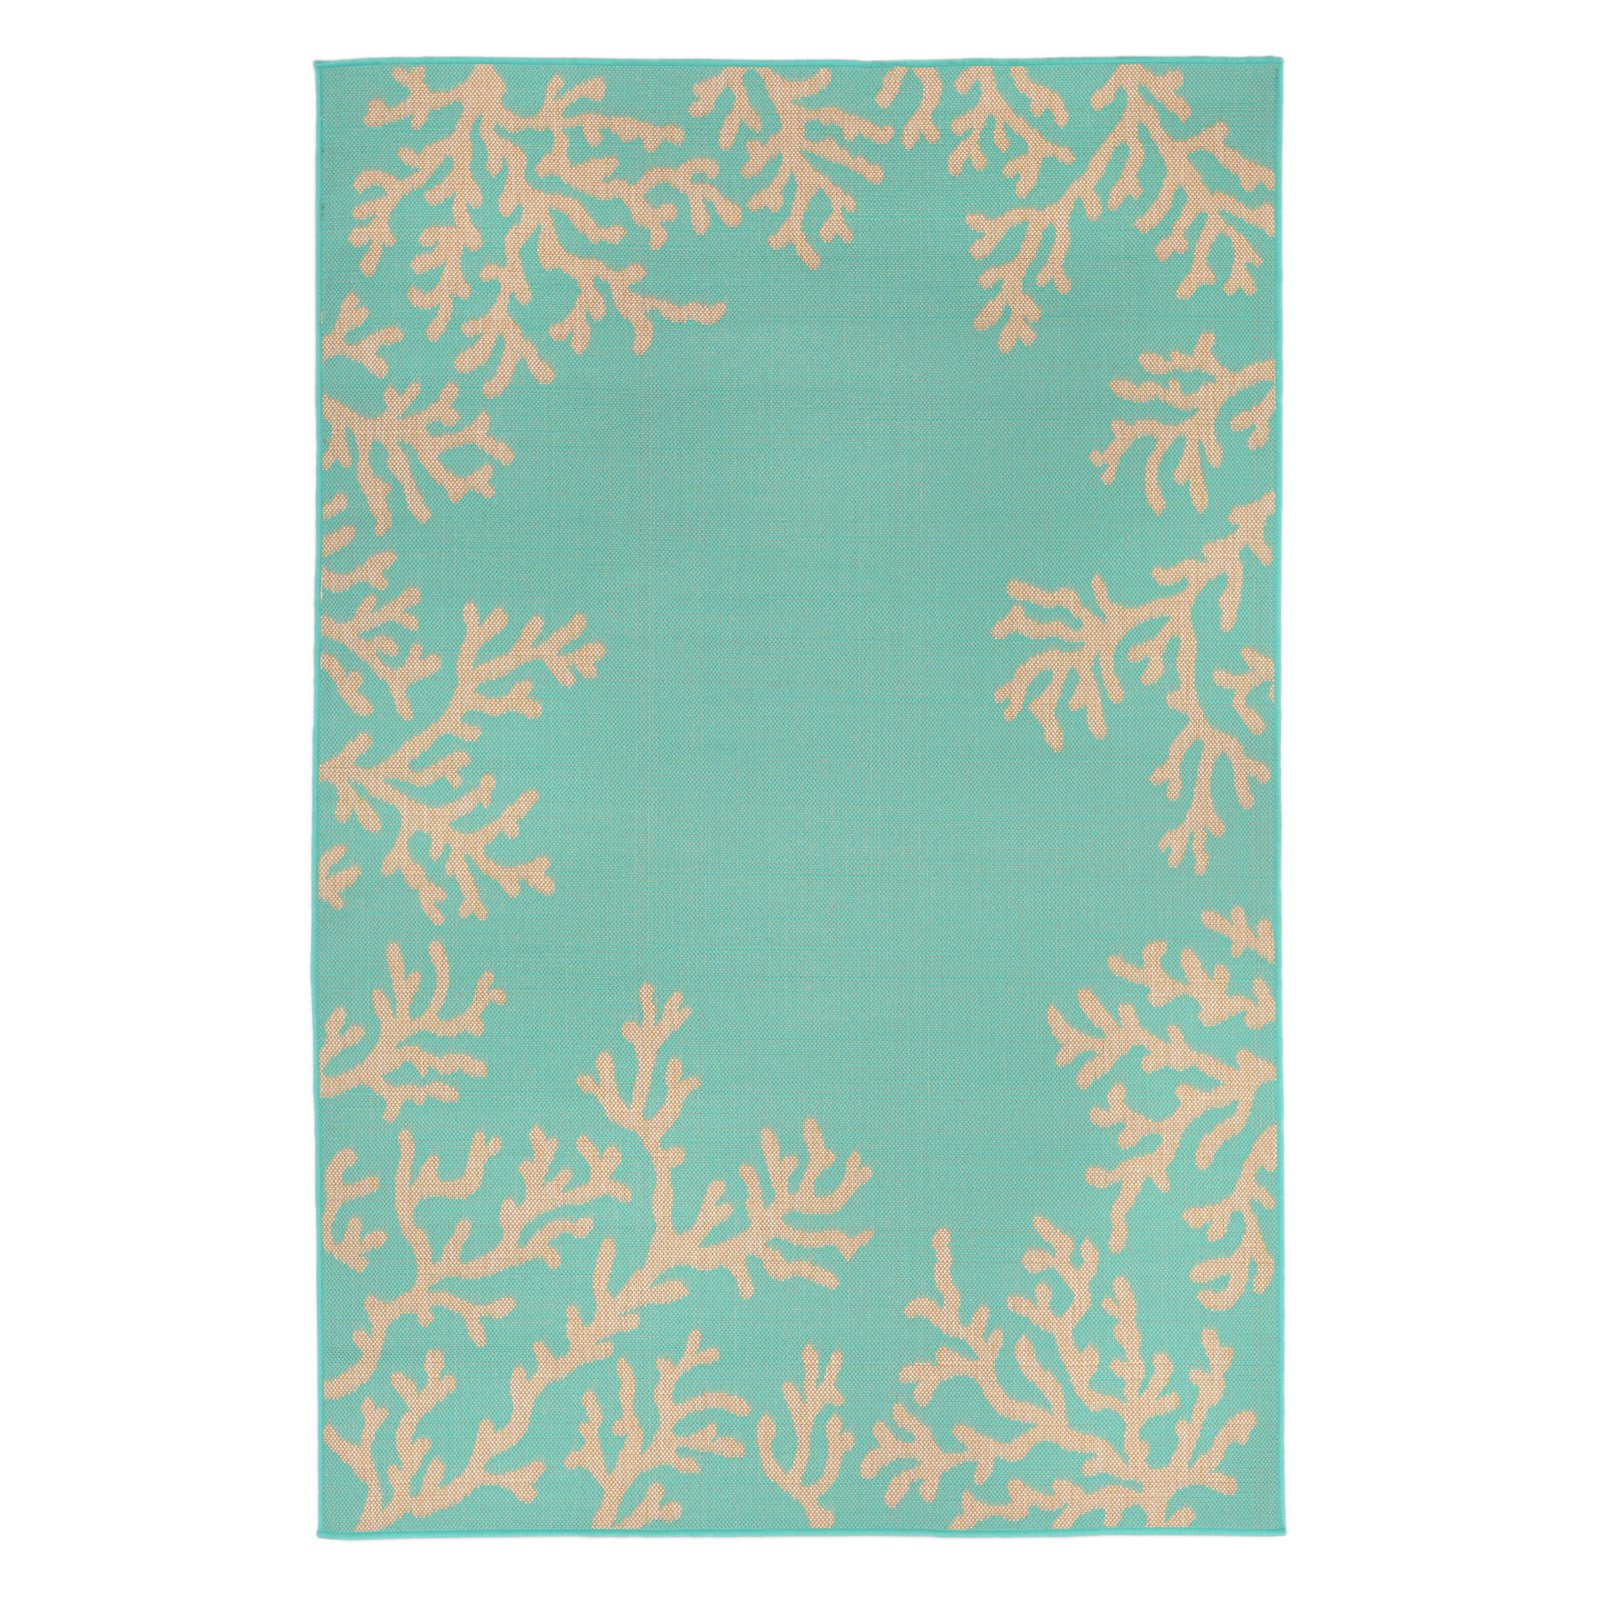 Liora Manne Terrace 1783/93 Coral Border Turquoise Area Rug 23 Inches X 35 Inches